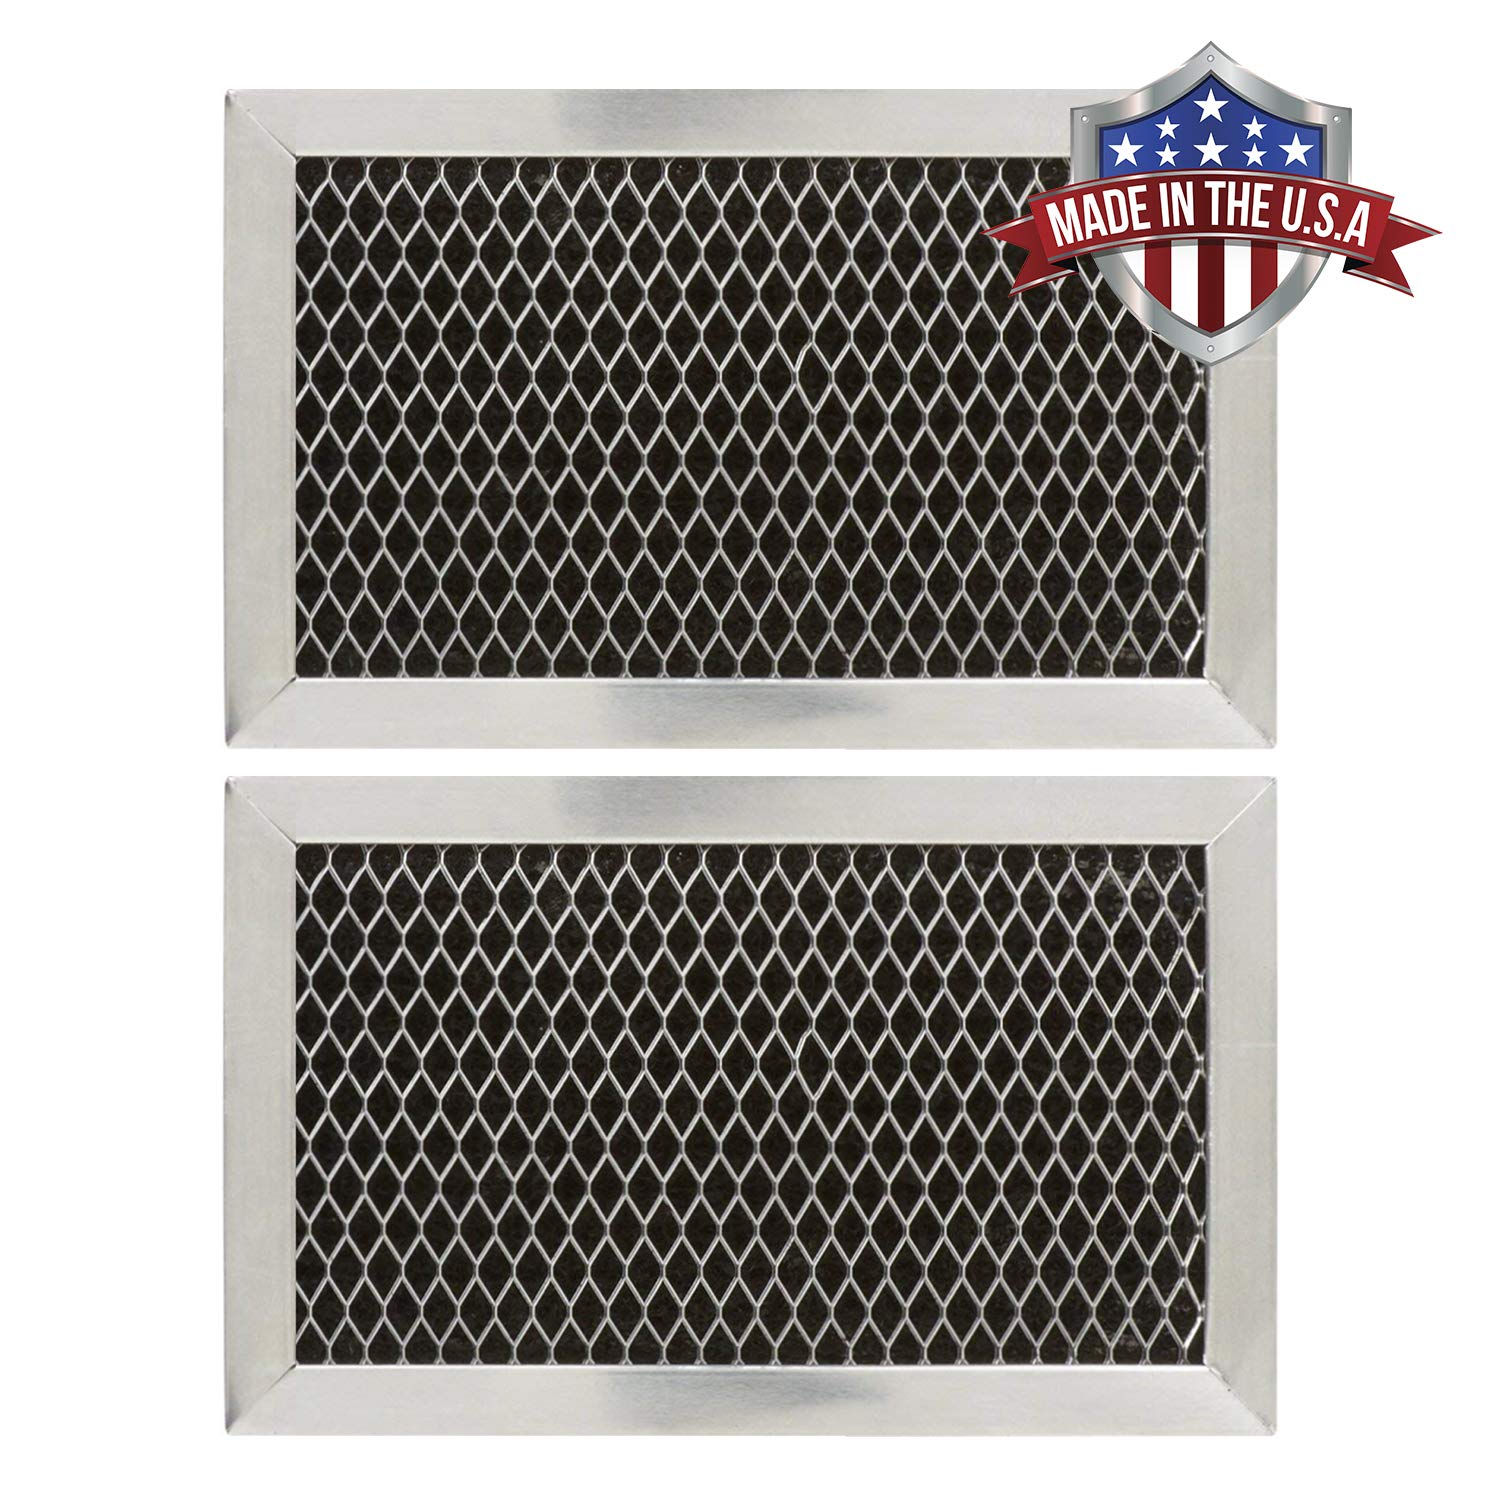 GE JX81J WB02X11124 Made in USA WB06X10823 Microwave Recirculating Charcoal Filter 1-Pack